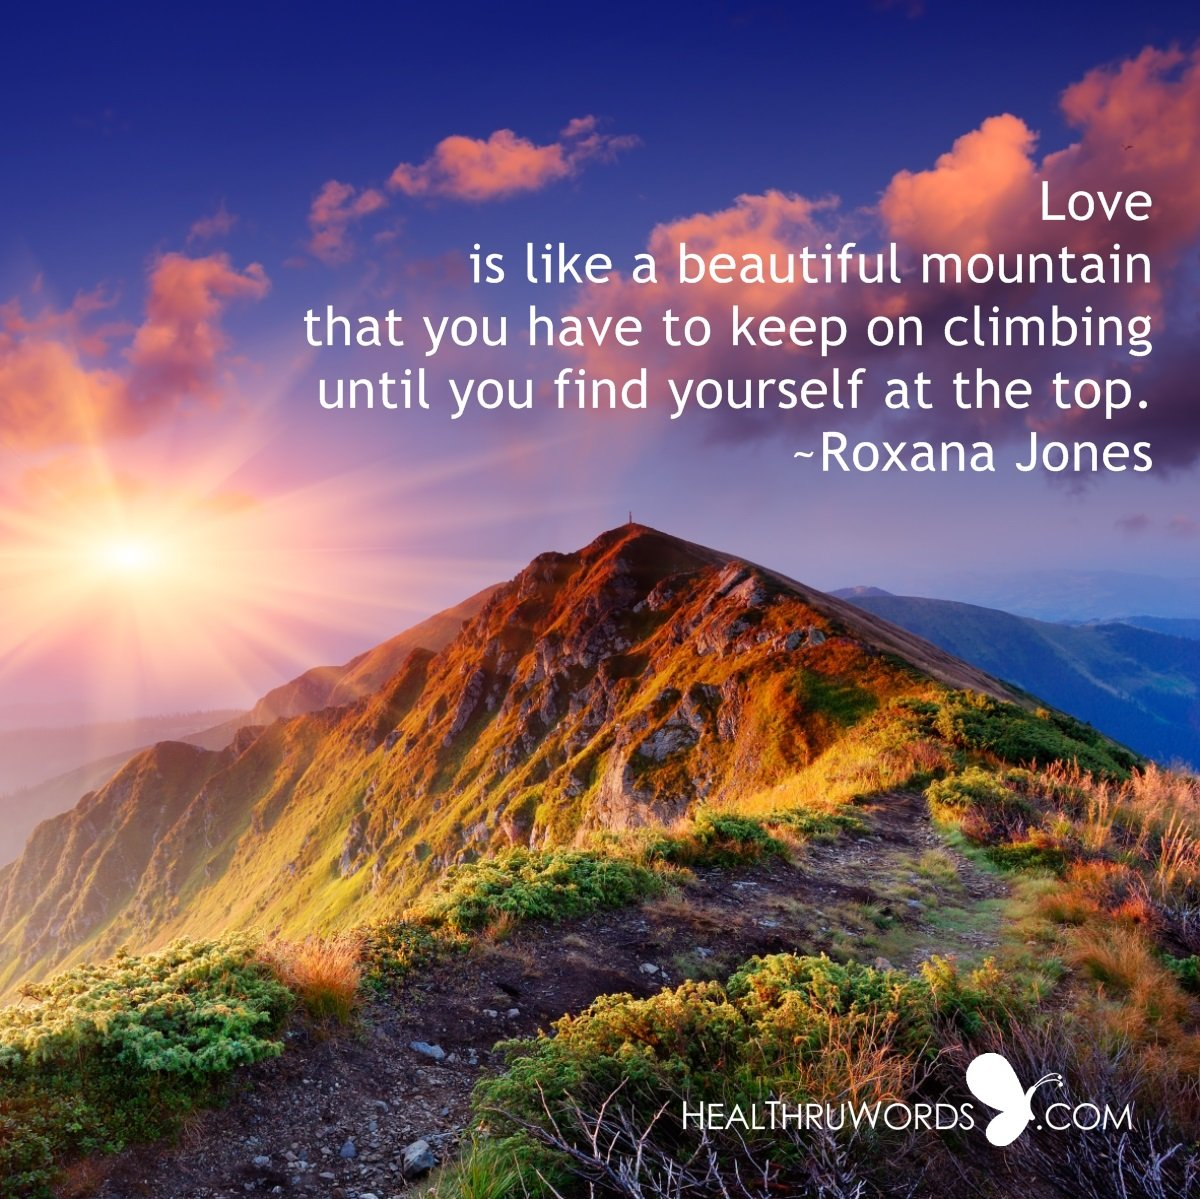 Inspirational Image: The Mountain of Love